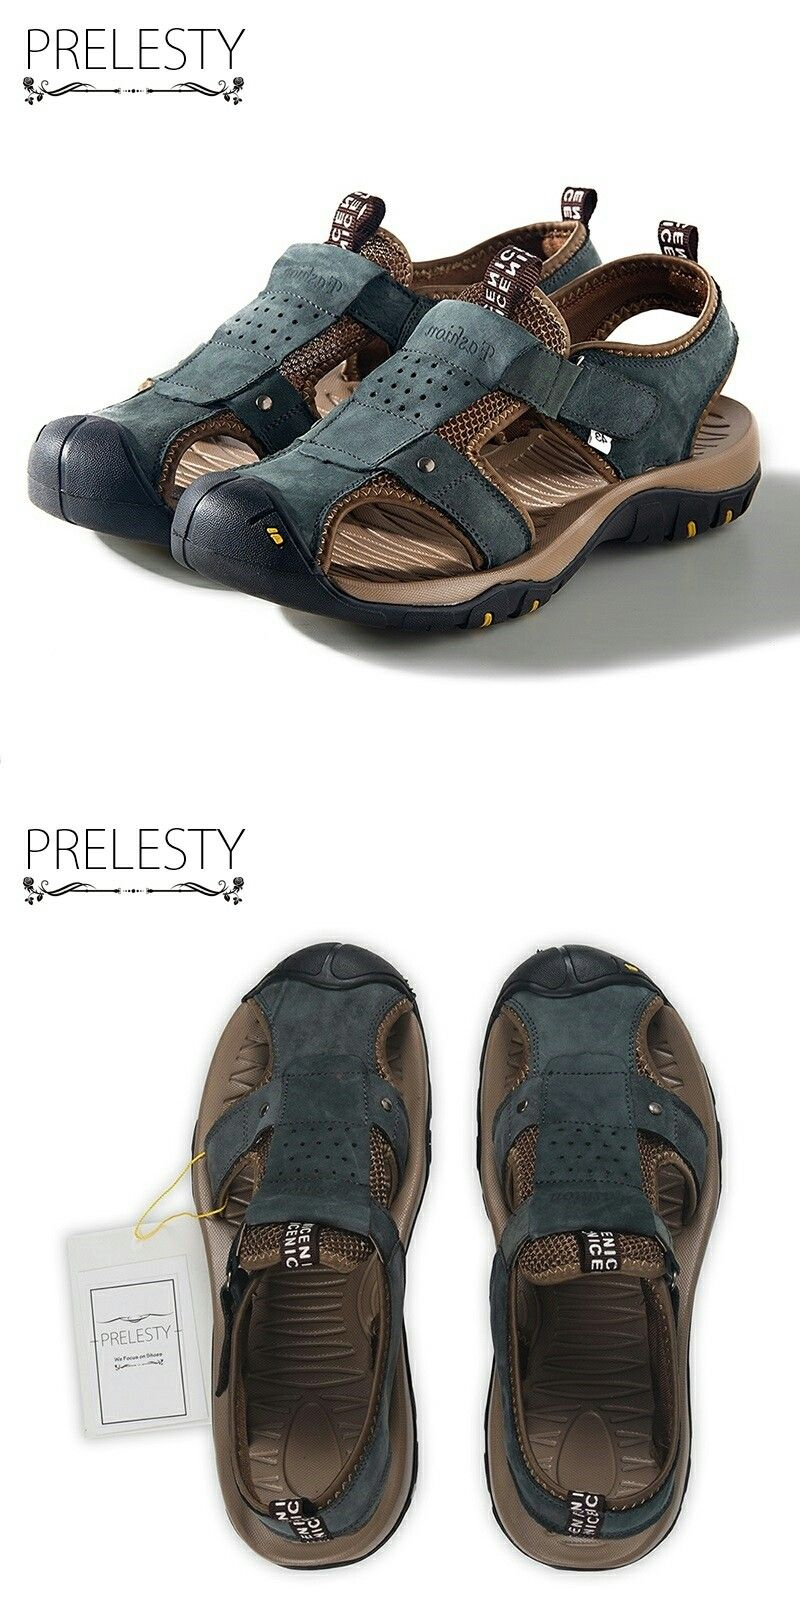 Open Toe Slippers Breathable Non-Slip Rivet Reinforcement Beach Leisure Shoes Leather Lightweight Wear Resistant Slippers HHF Flat Sandals /& Slippers Mens Fashion Casual Sandals